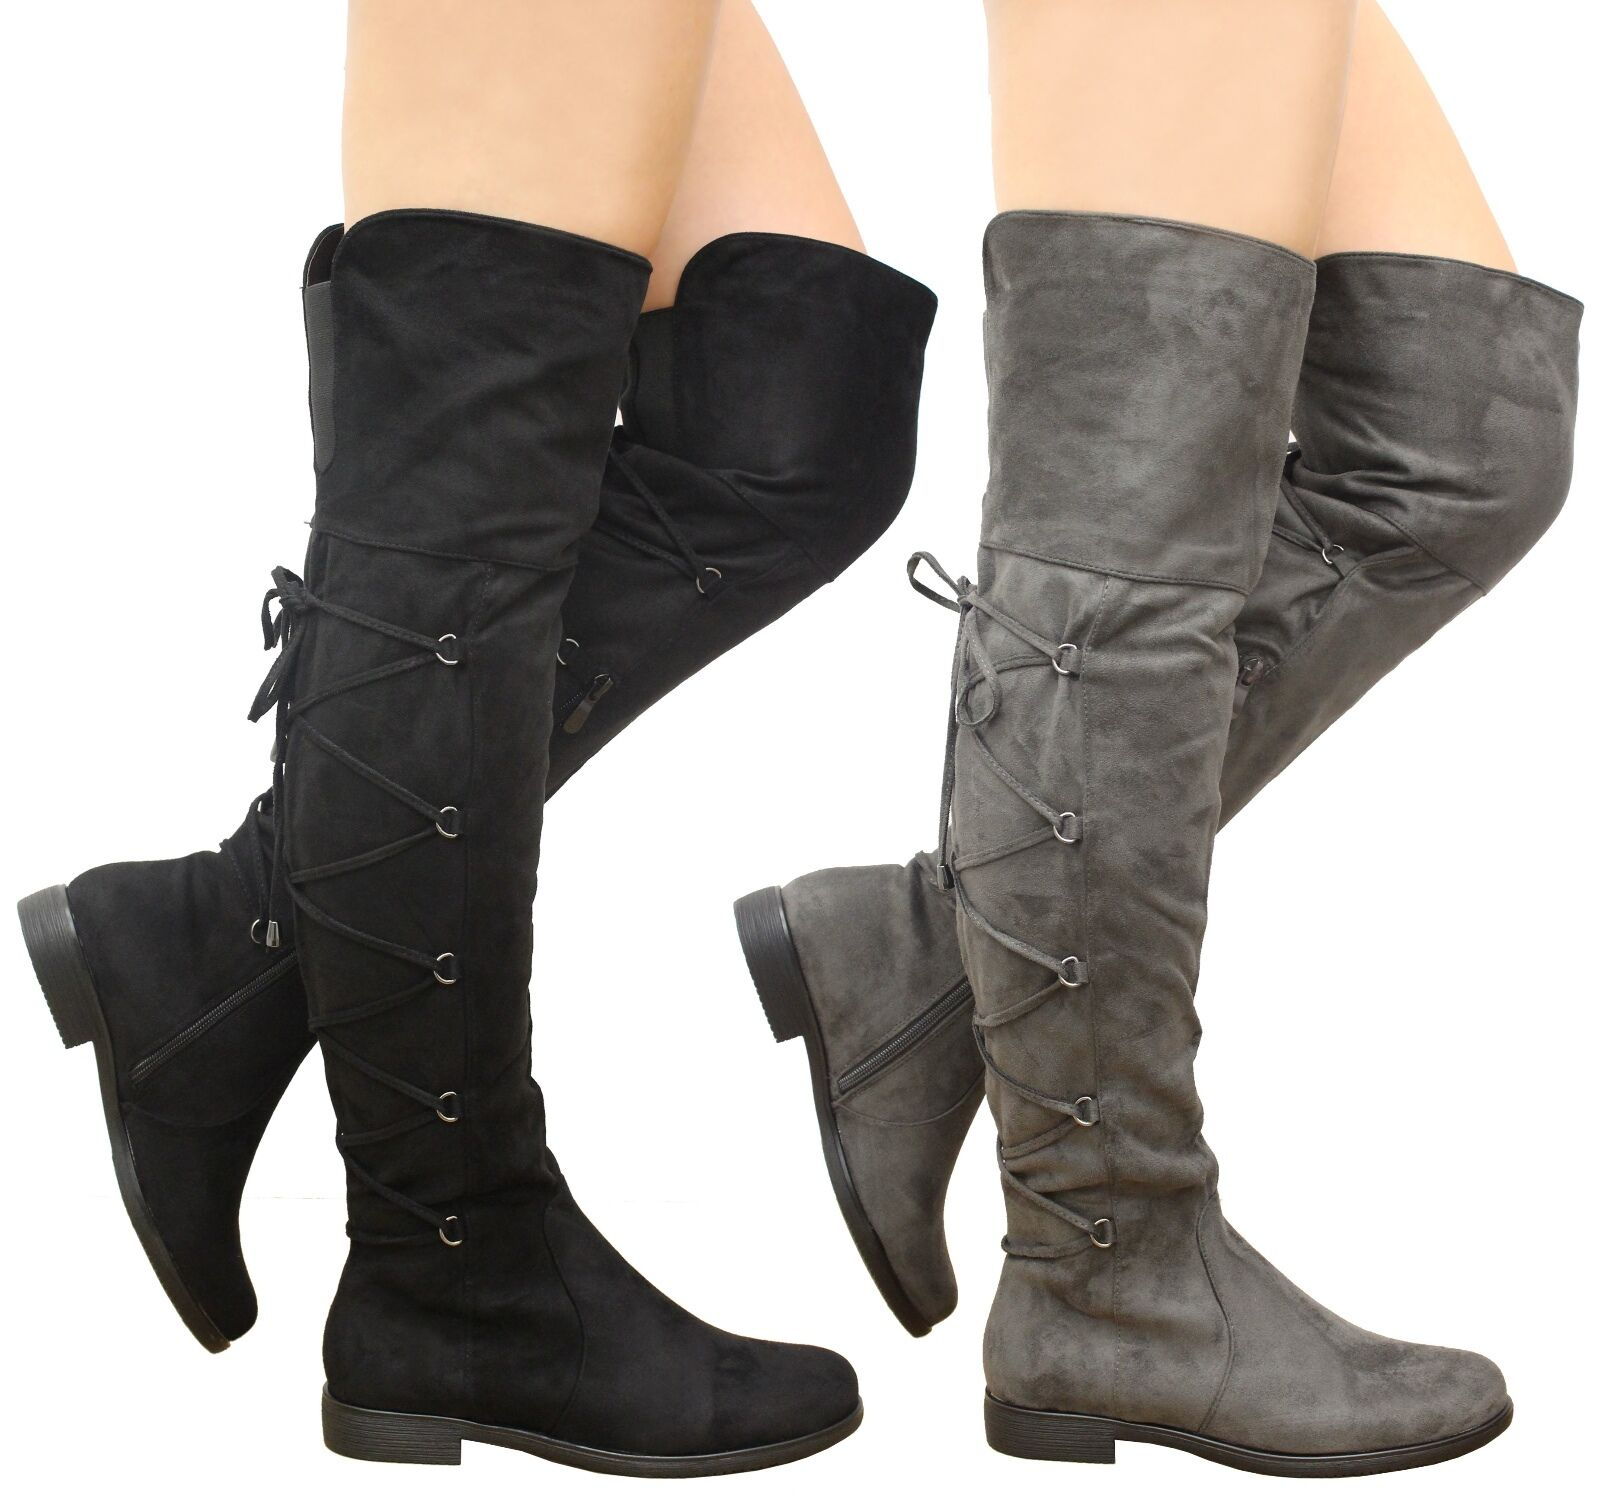 Ladies Womens Thigh High Over The Knee Boots Lace Up Gusset Low Heels Shoes Size